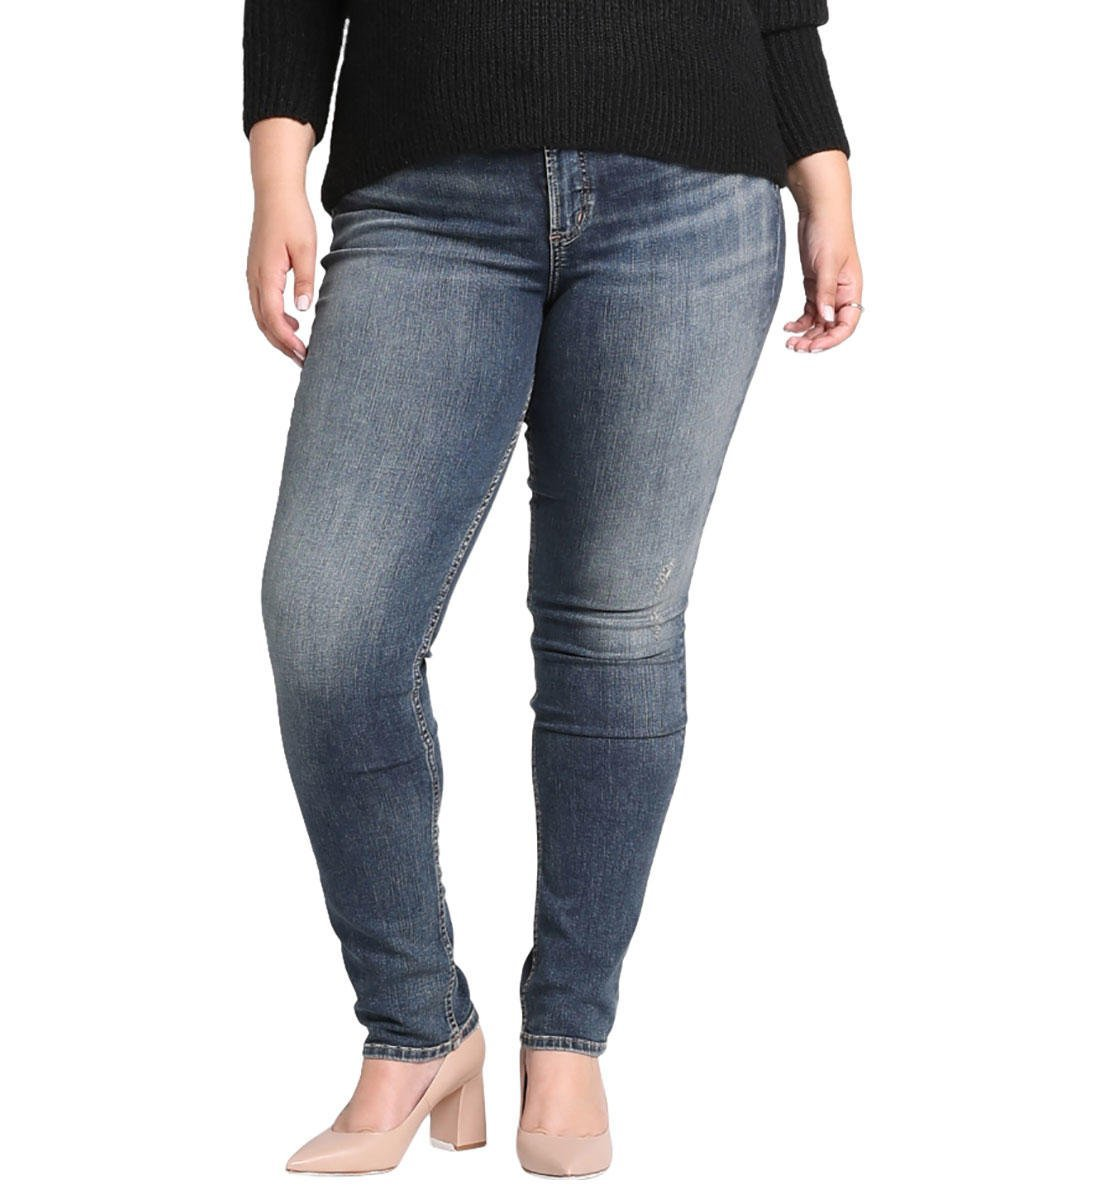 Womens Avery Curvy Fit High Rise Bootcut Jeans with Vent Silver Jeans Co